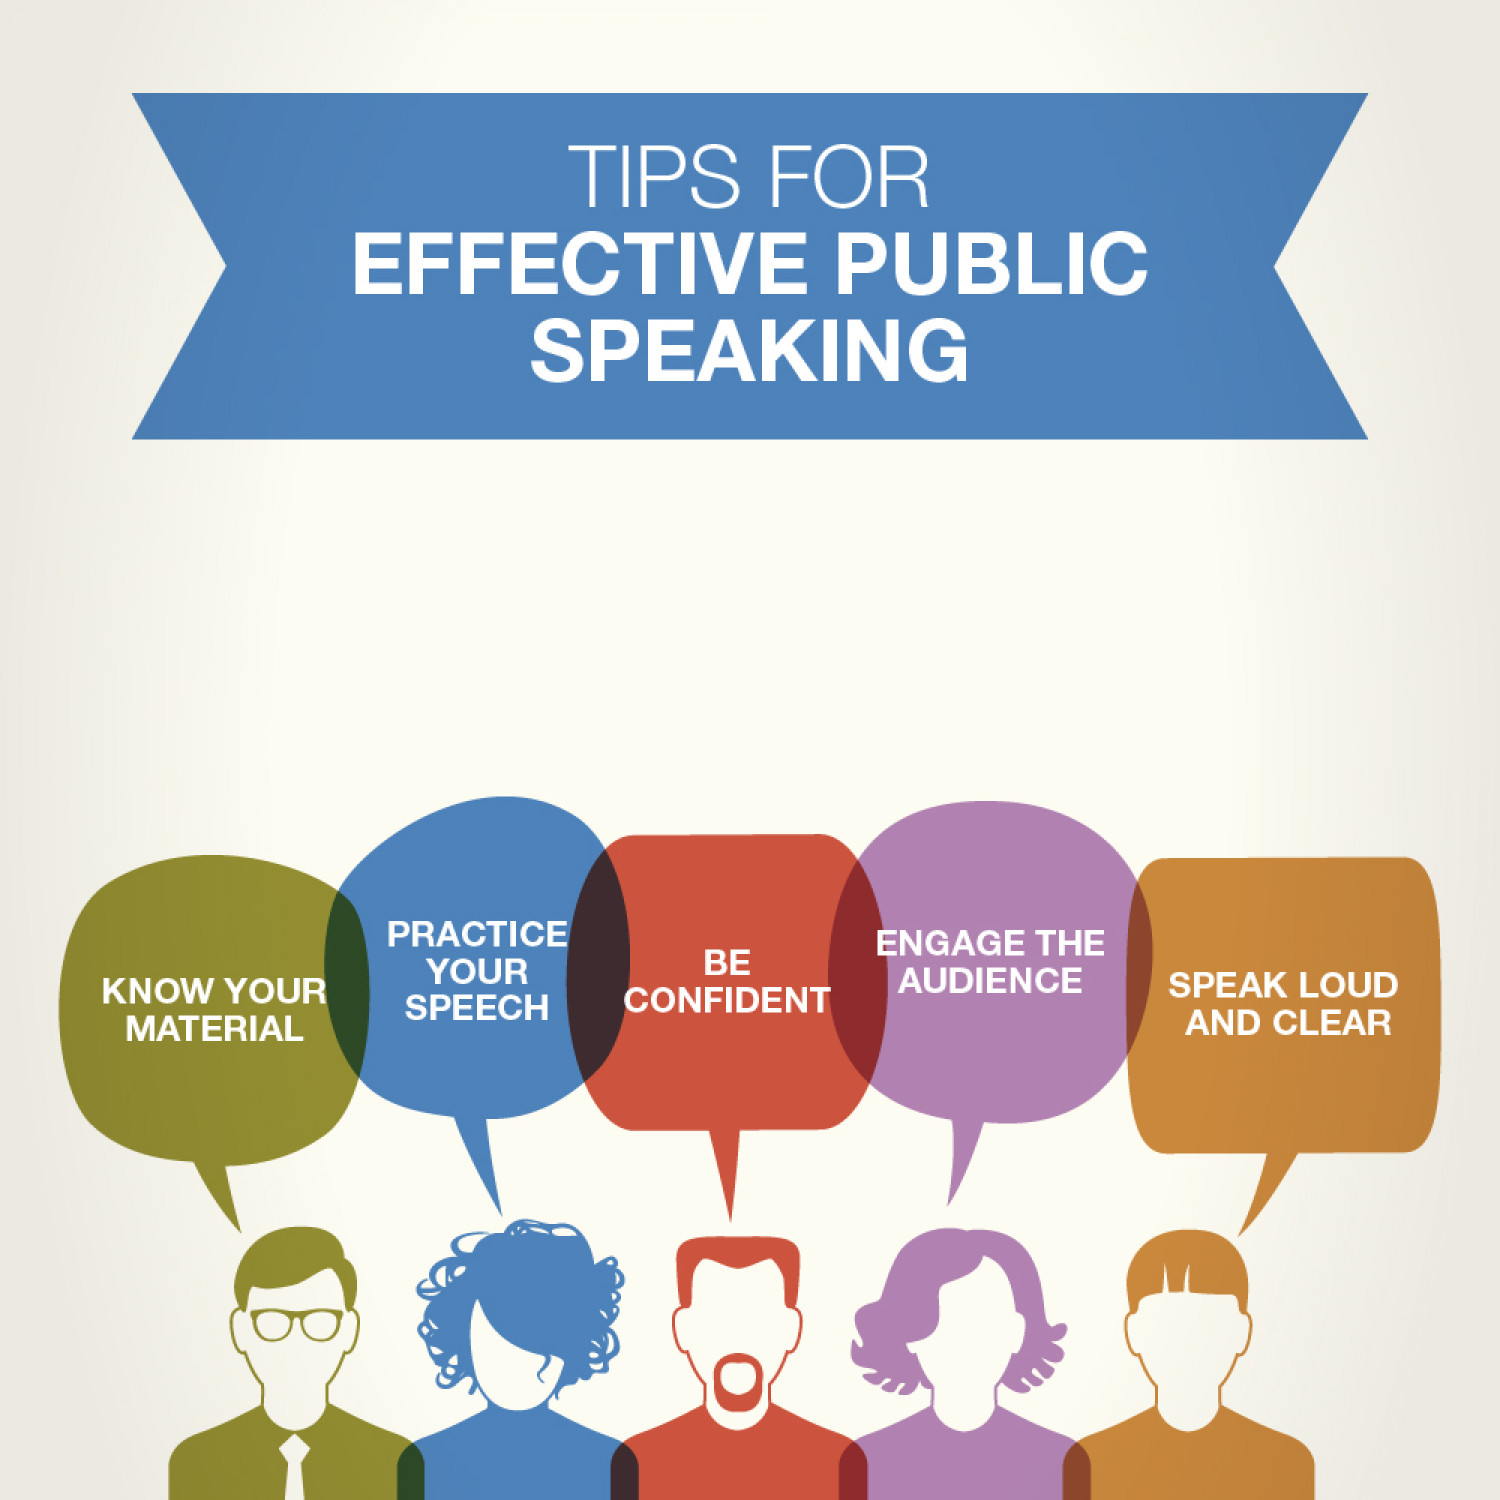 Public speaking tips for engaging public speaking how to improve your public speaking infographic fandeluxe Images